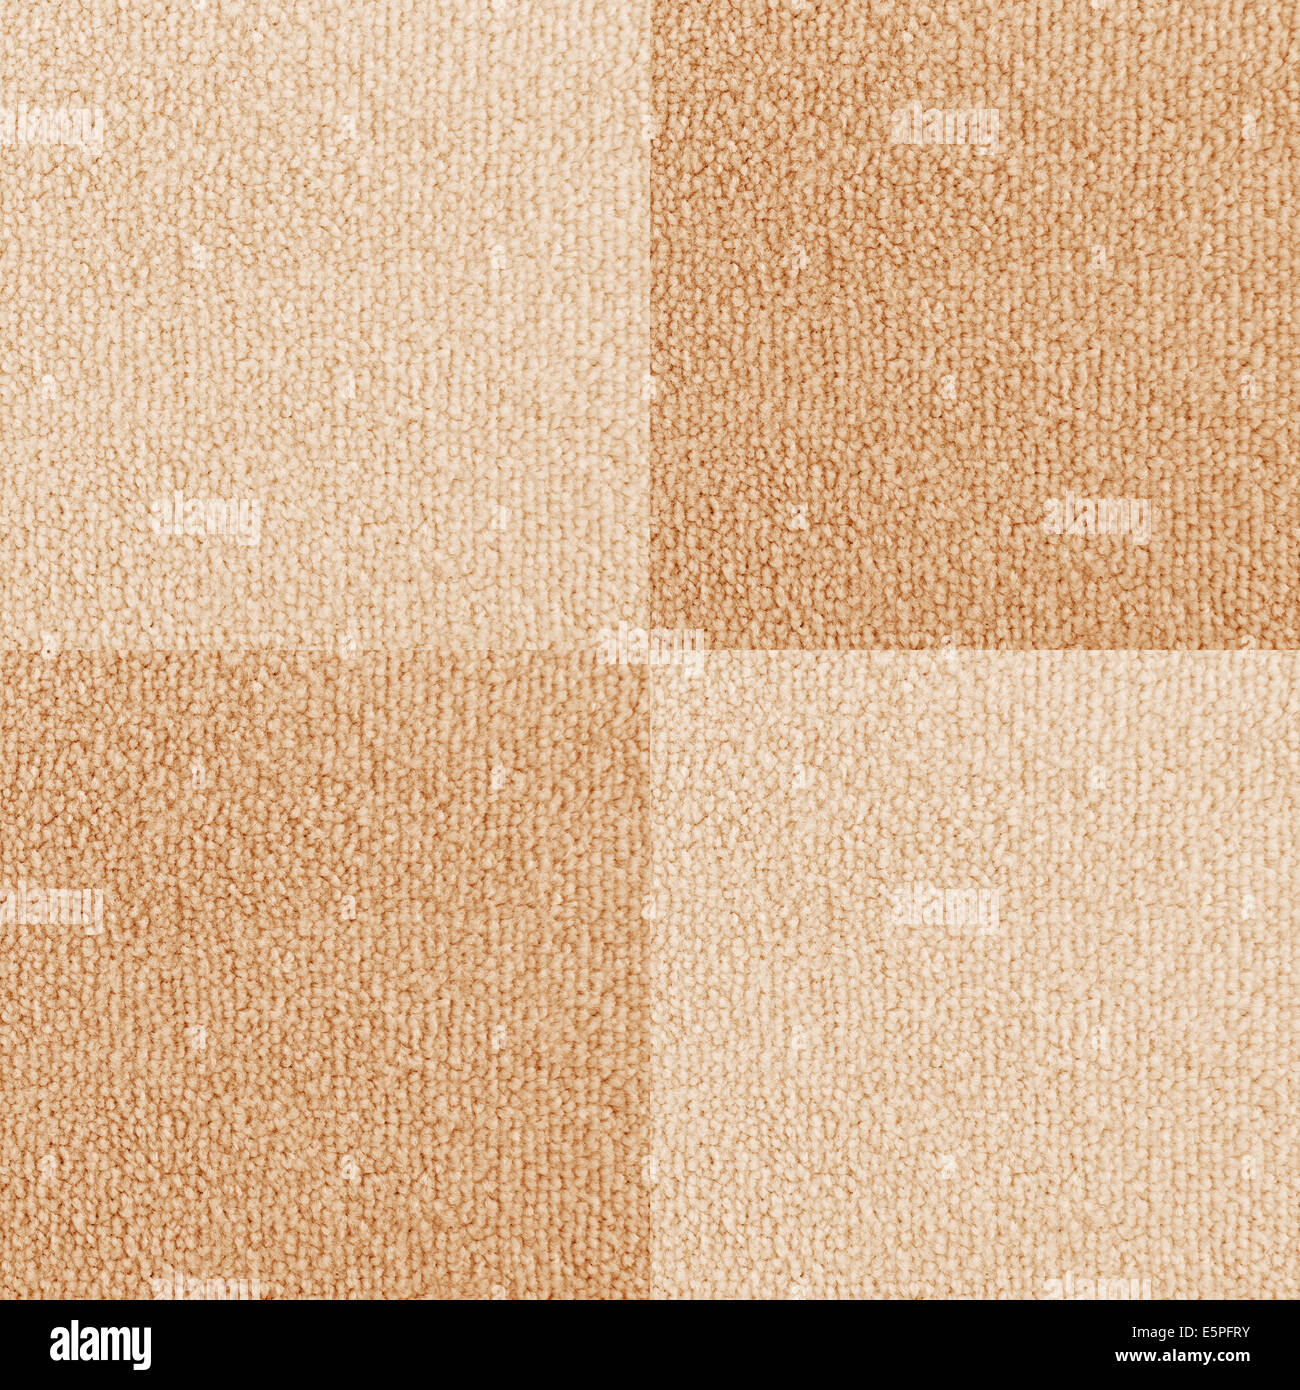 new checkered carpet texture bright beige carpet flooring as seamless background